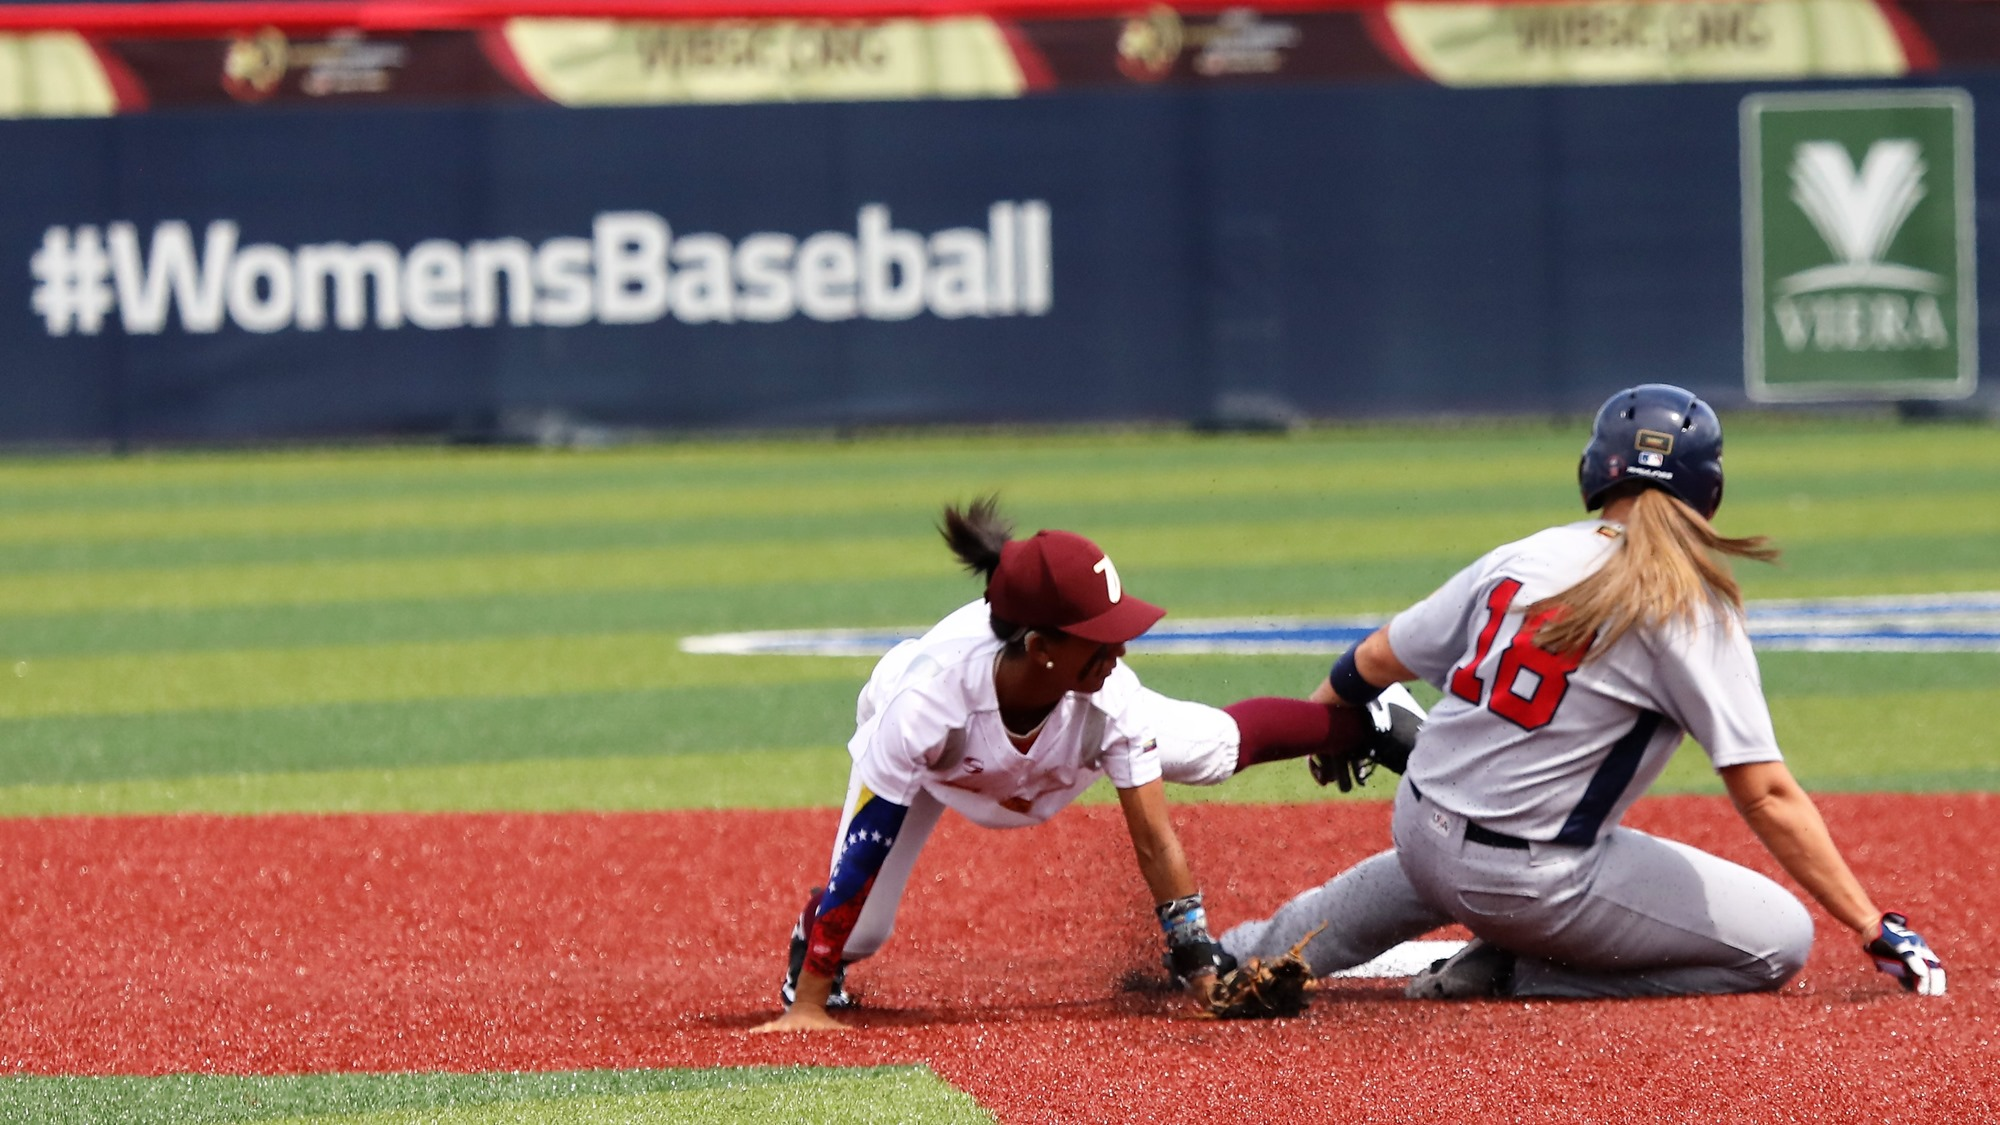 Michelle Cobb slides into second to avoid a tag by Maigleth Torres